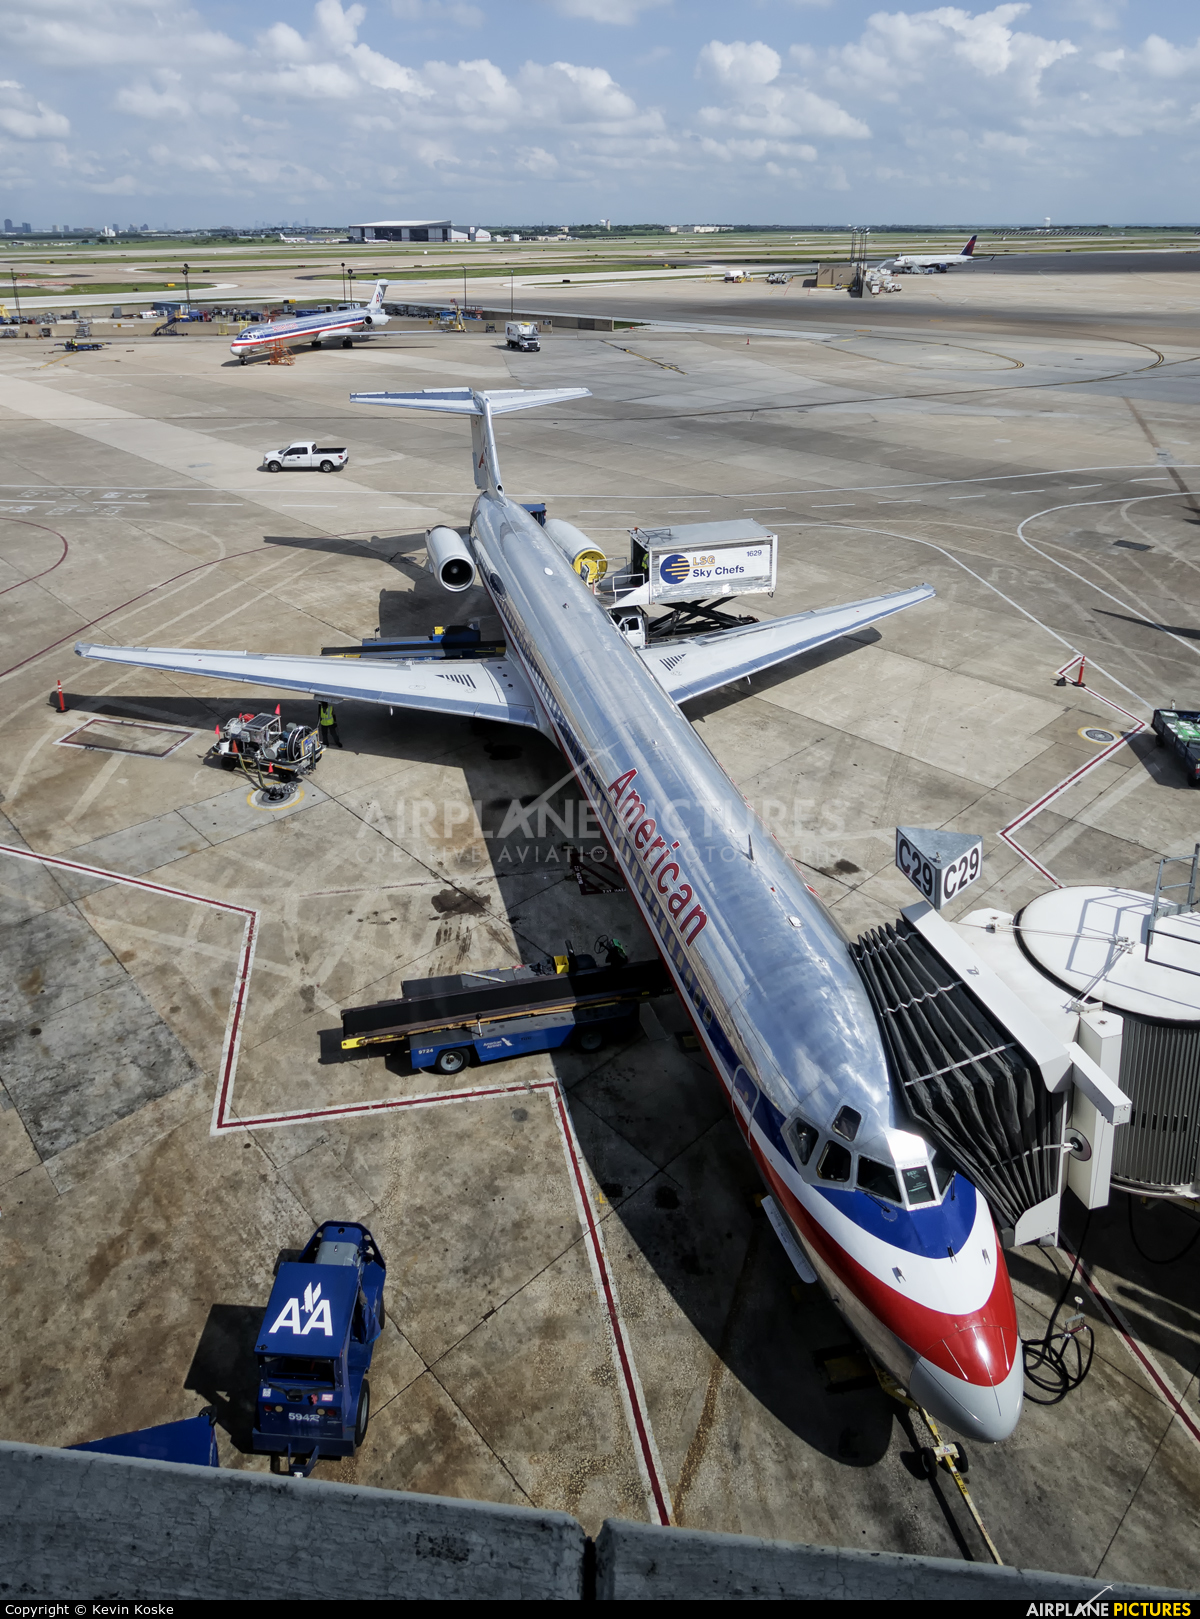 American Airlines - aircraft at Dallas - Fort Worth Intl